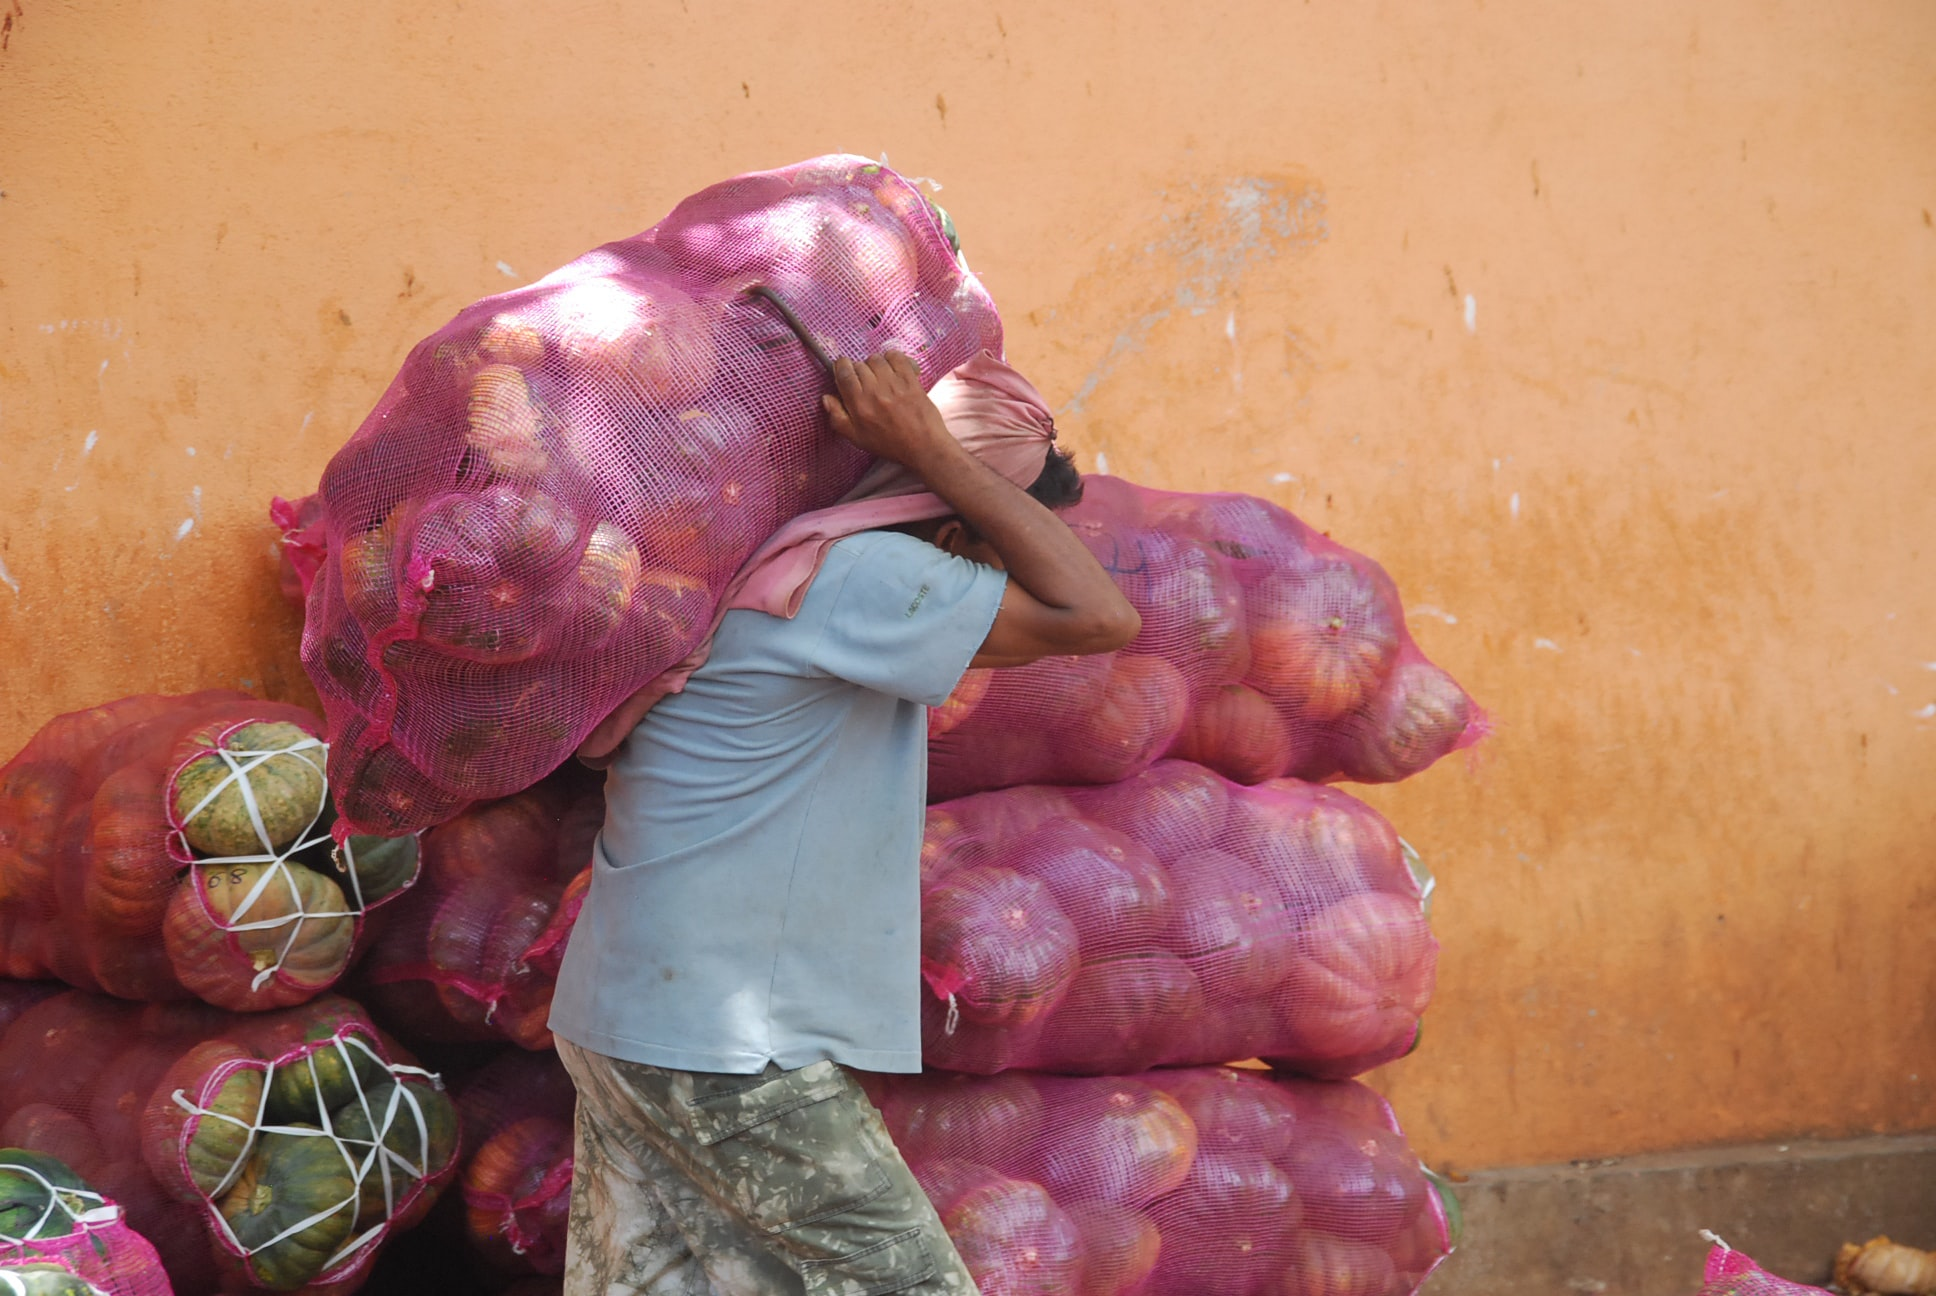 A man carries and stacks pumpkins in bags